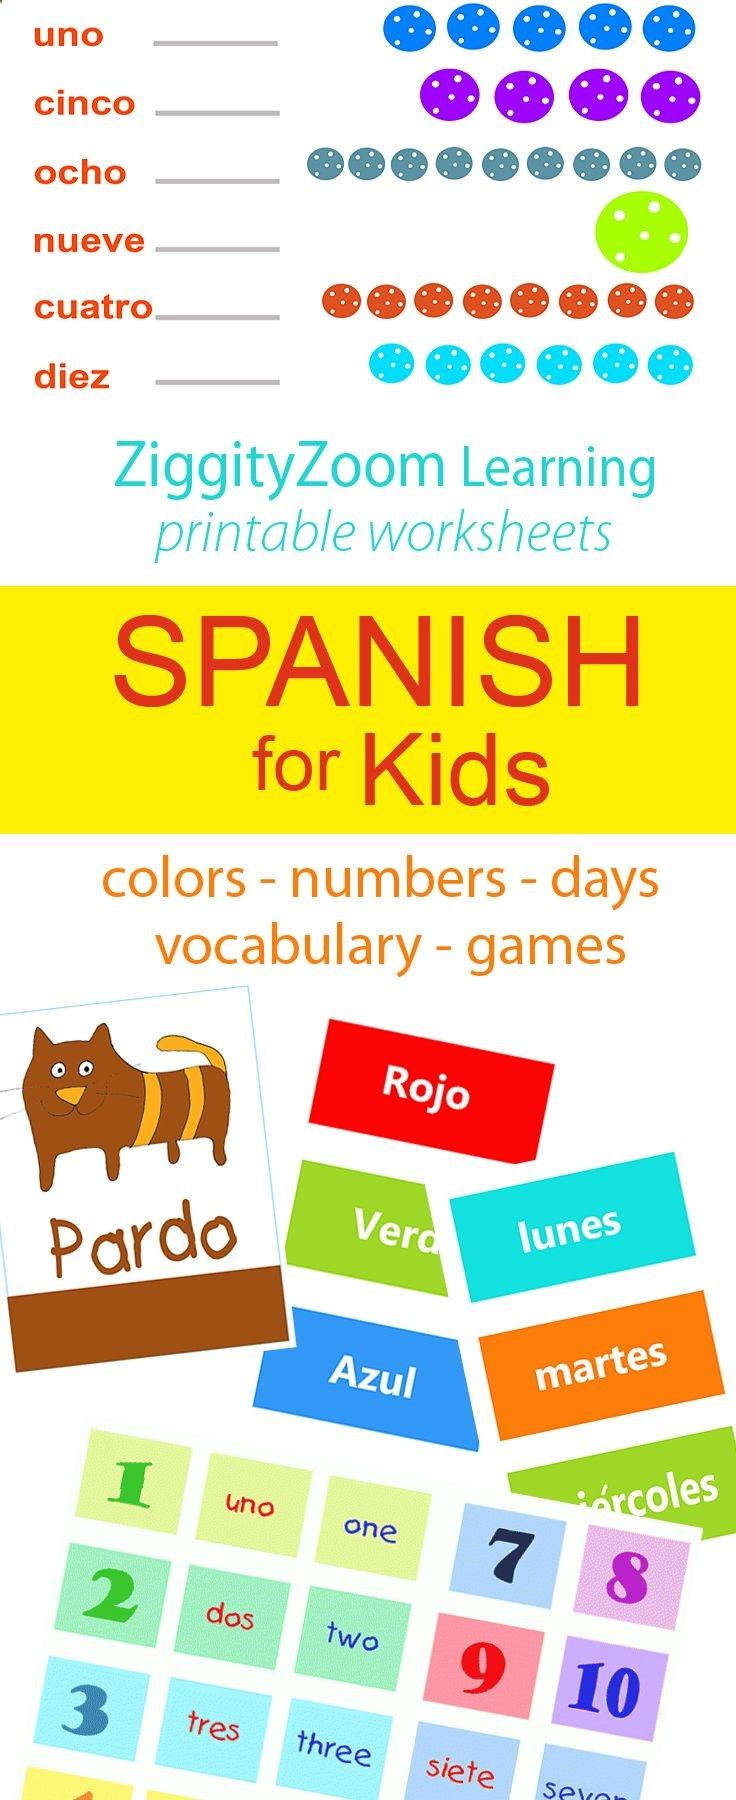 worksheet Printable Spanish Worksheets free printable spanish worksheets for kids lots of beginner printables learning or english